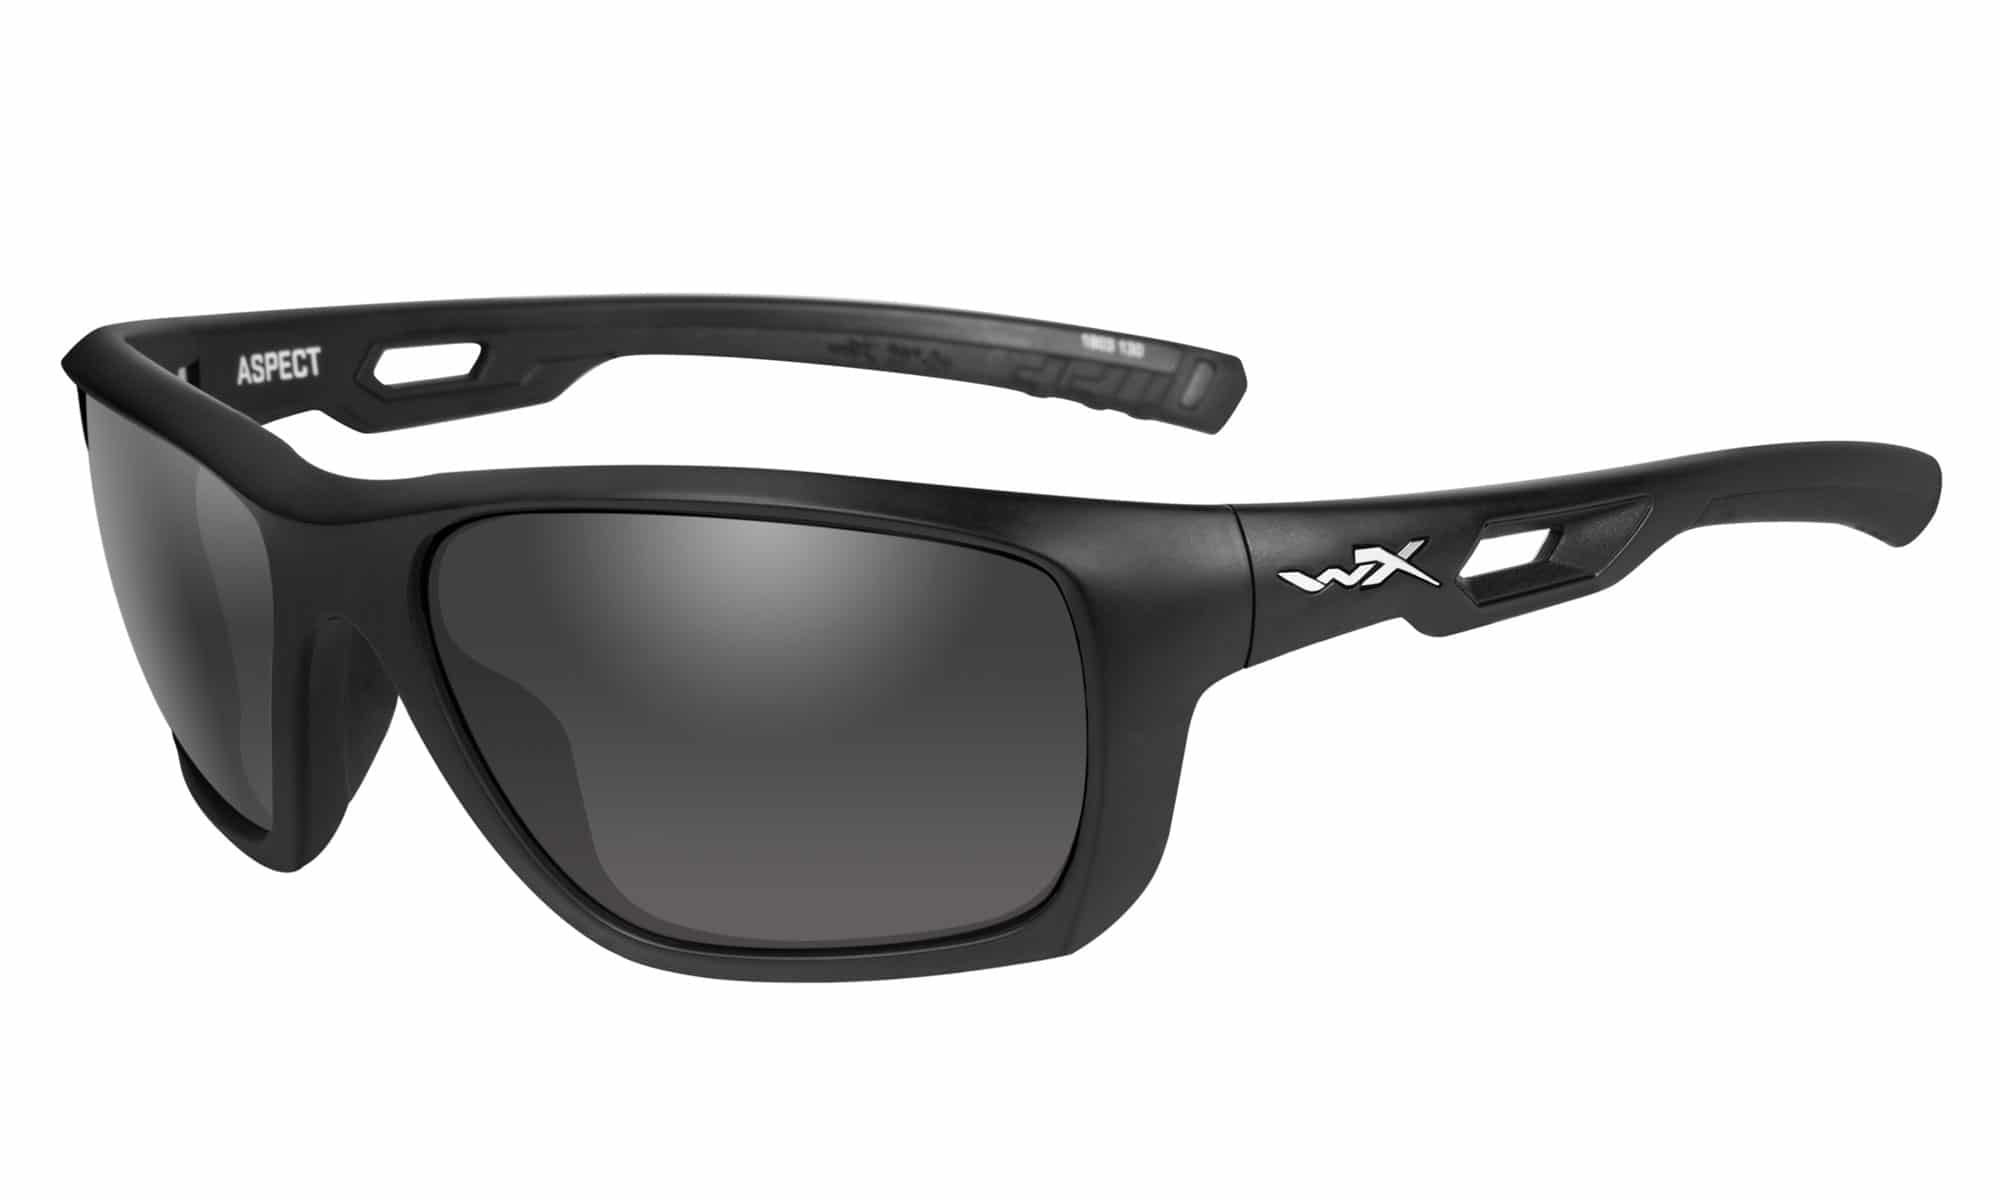 WX Aspect Sunglasses|Safety Glasses ACASP01